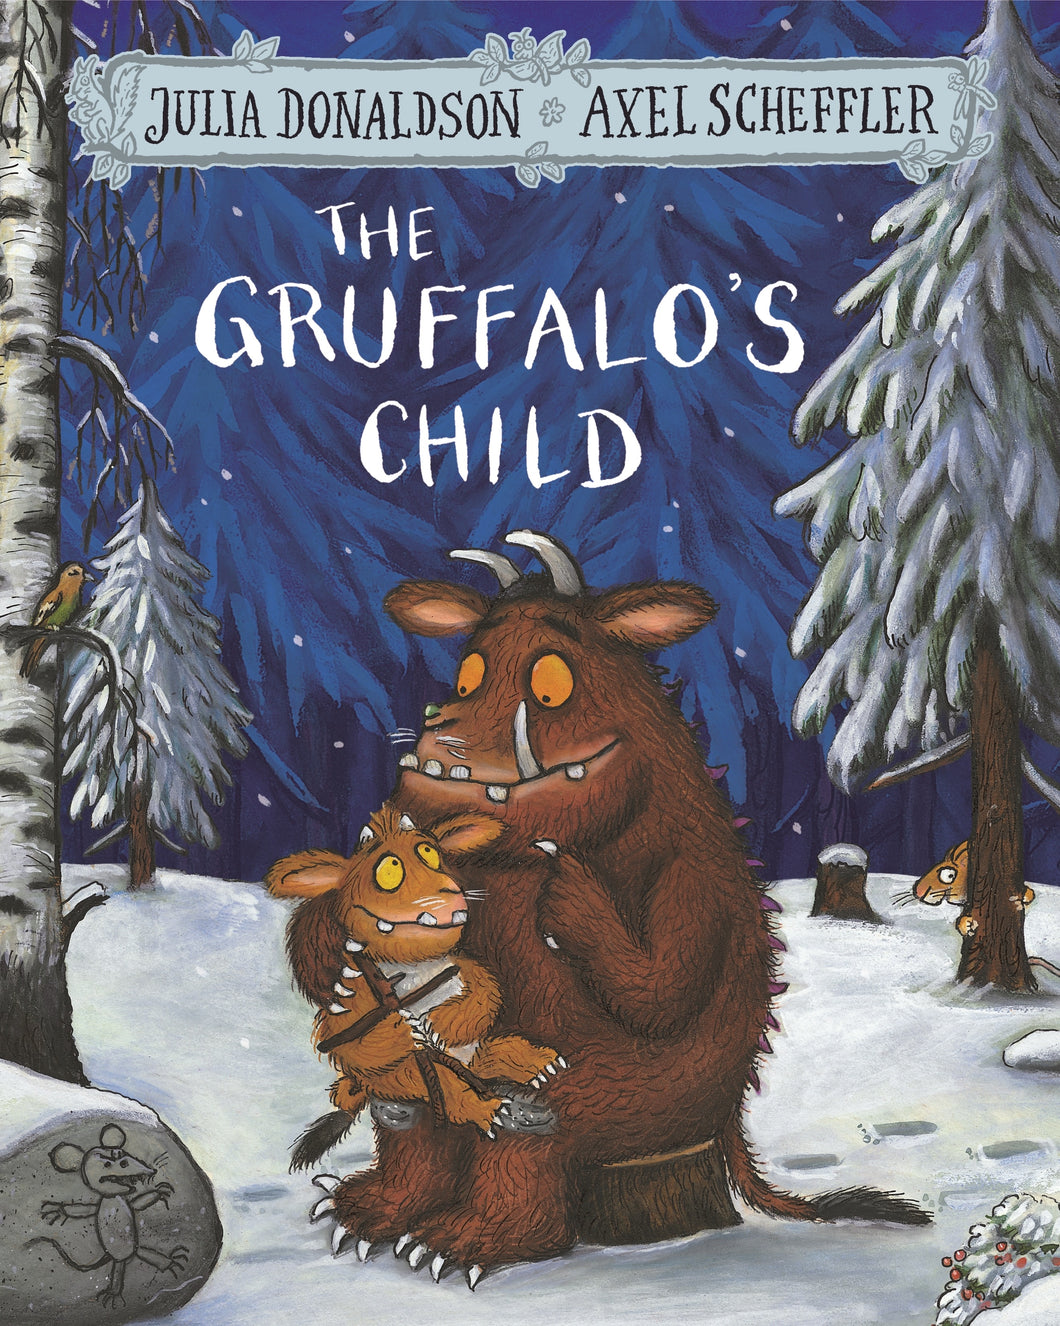 The Gruffalo's Child by Julia Donaldson and Axel Scheffler